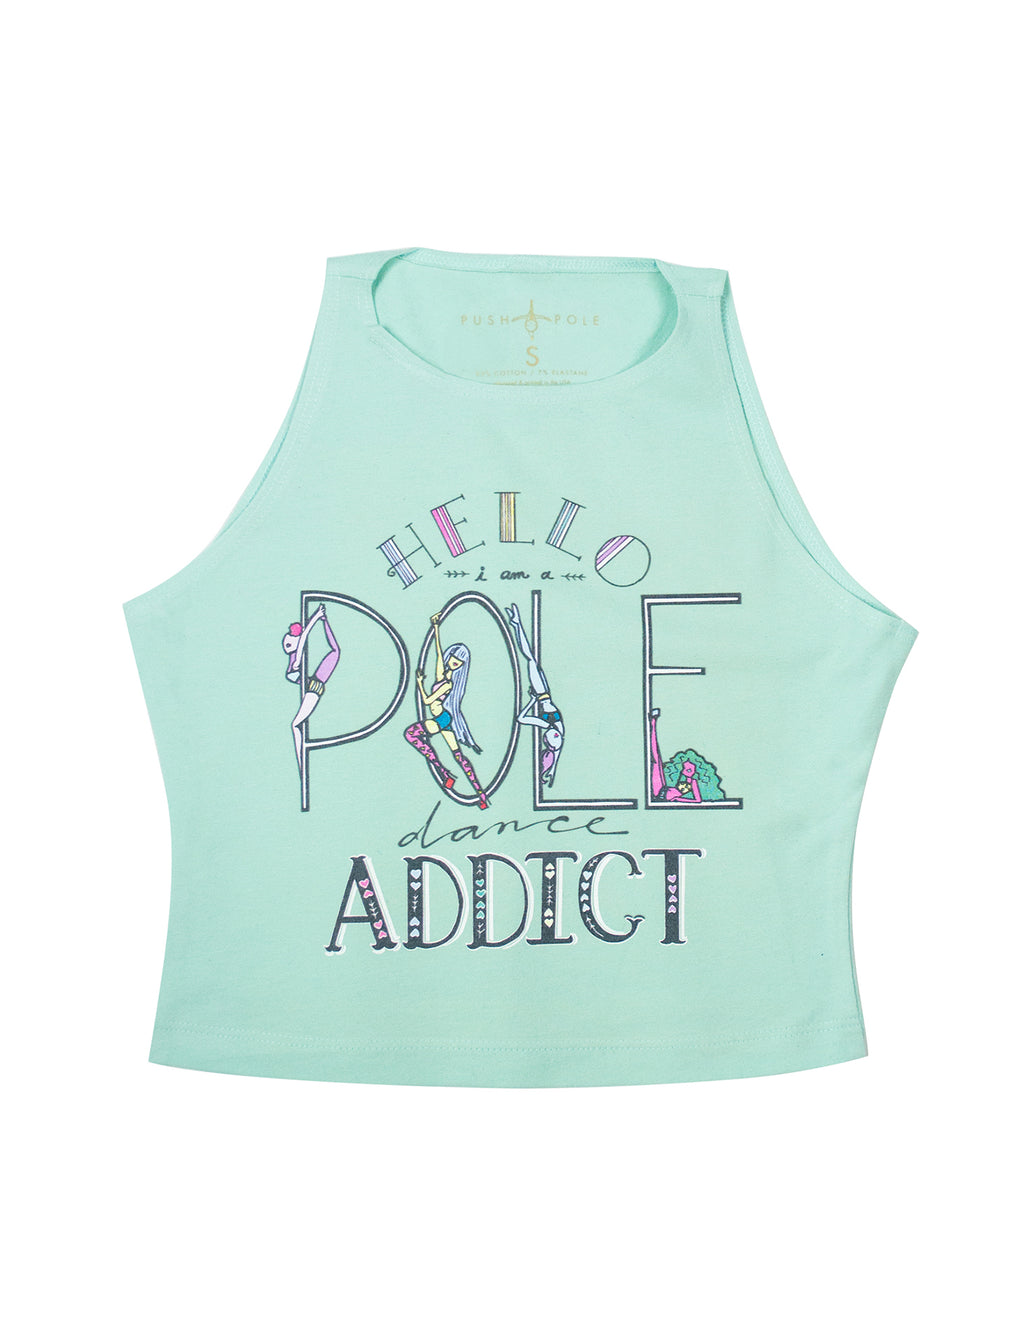 Pole Dancing Addict High Neck Crop Top